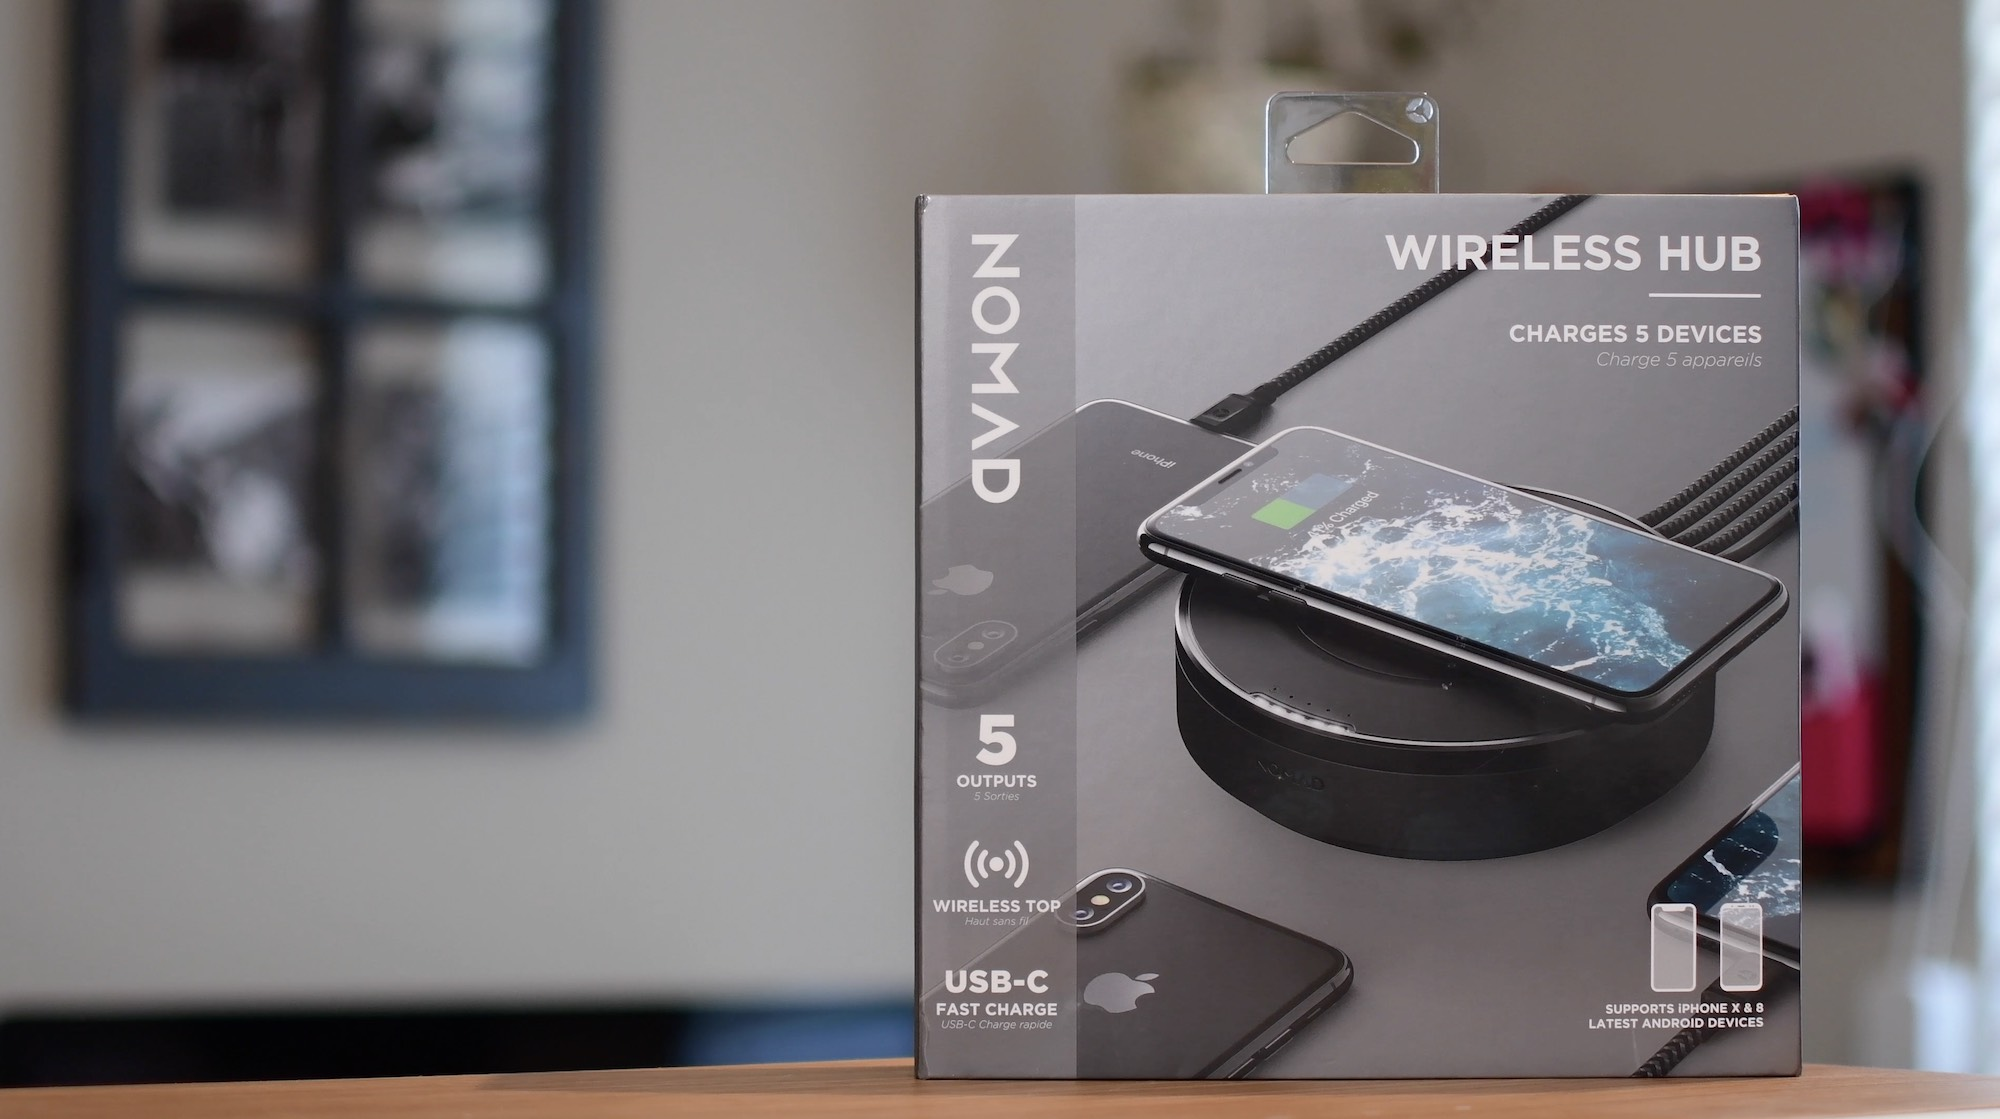 Qi Chargeur Nomad Wireless Hub Review